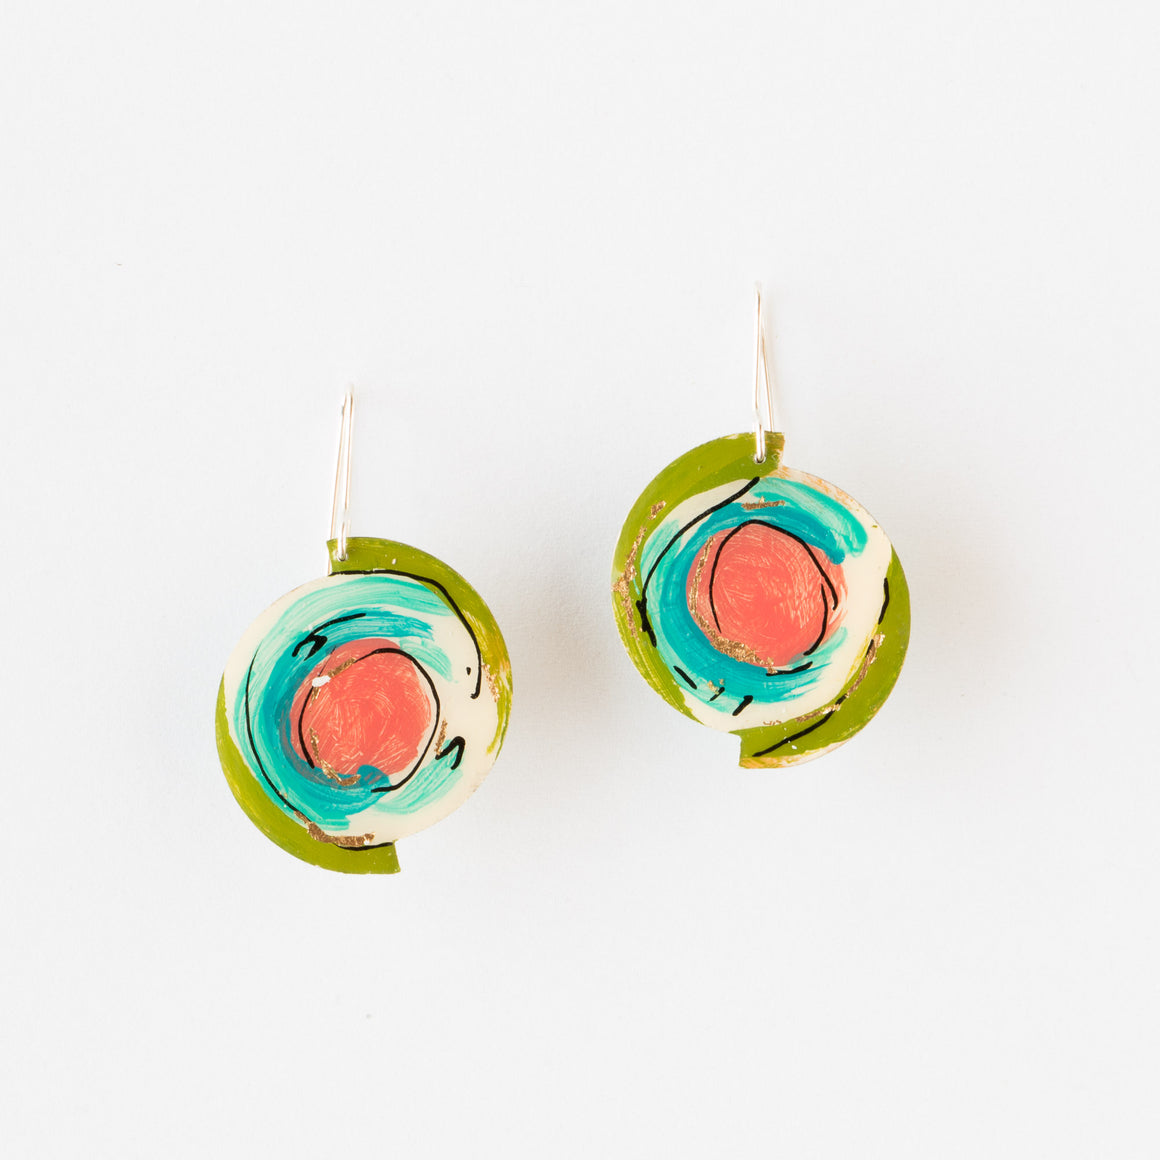 745 - Round Hand Painted Modern Earrings - Sold by Chic & Basta